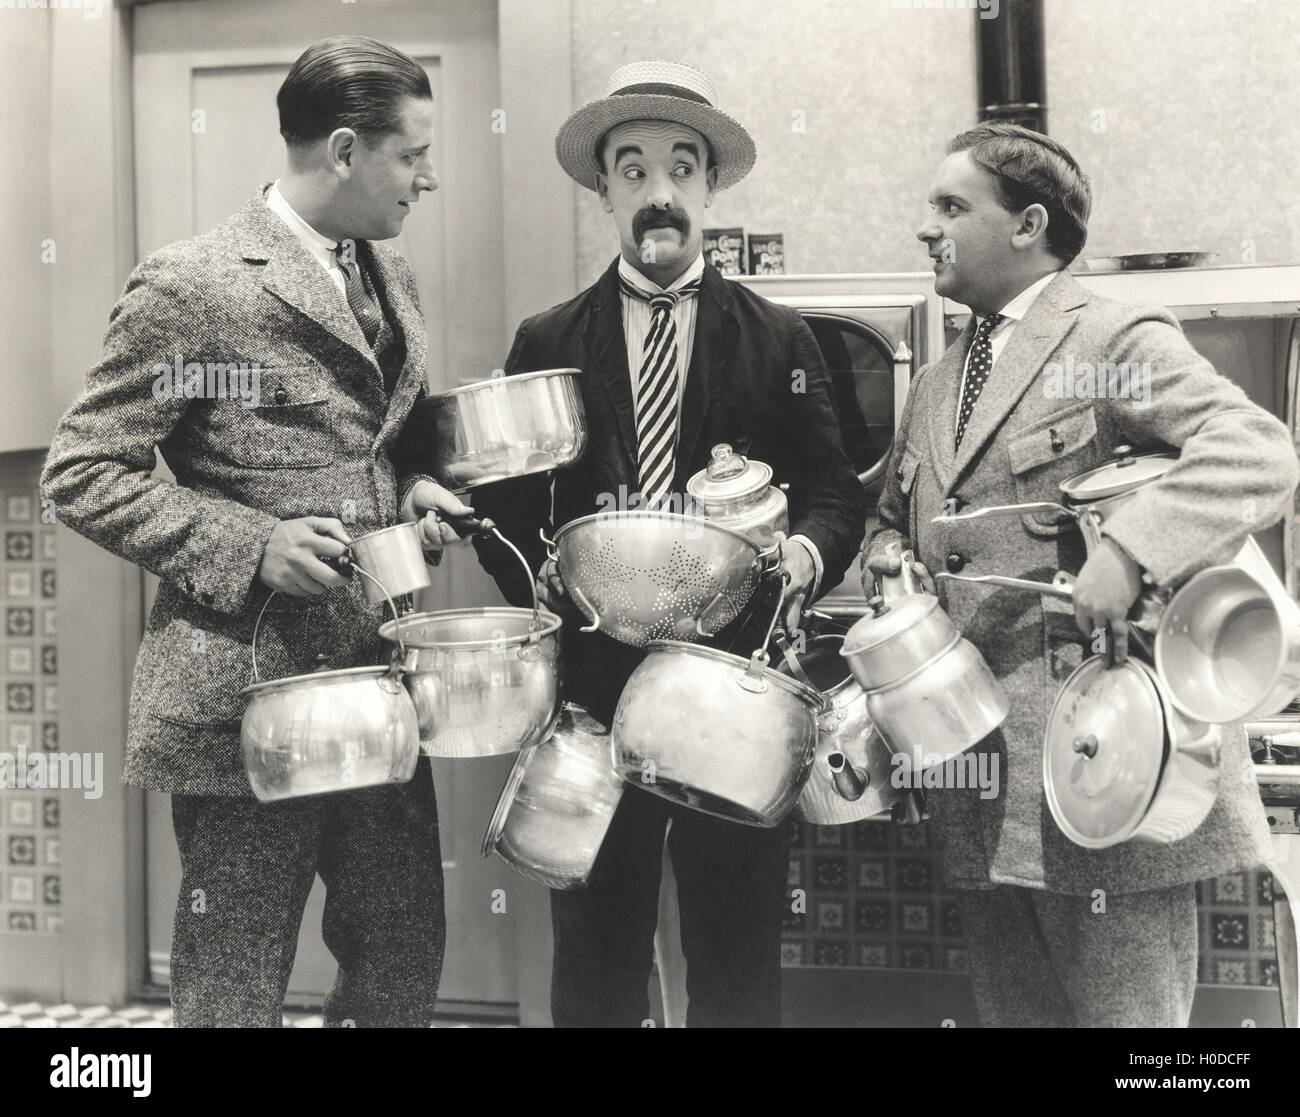 Men with lots of pots - Stock Image